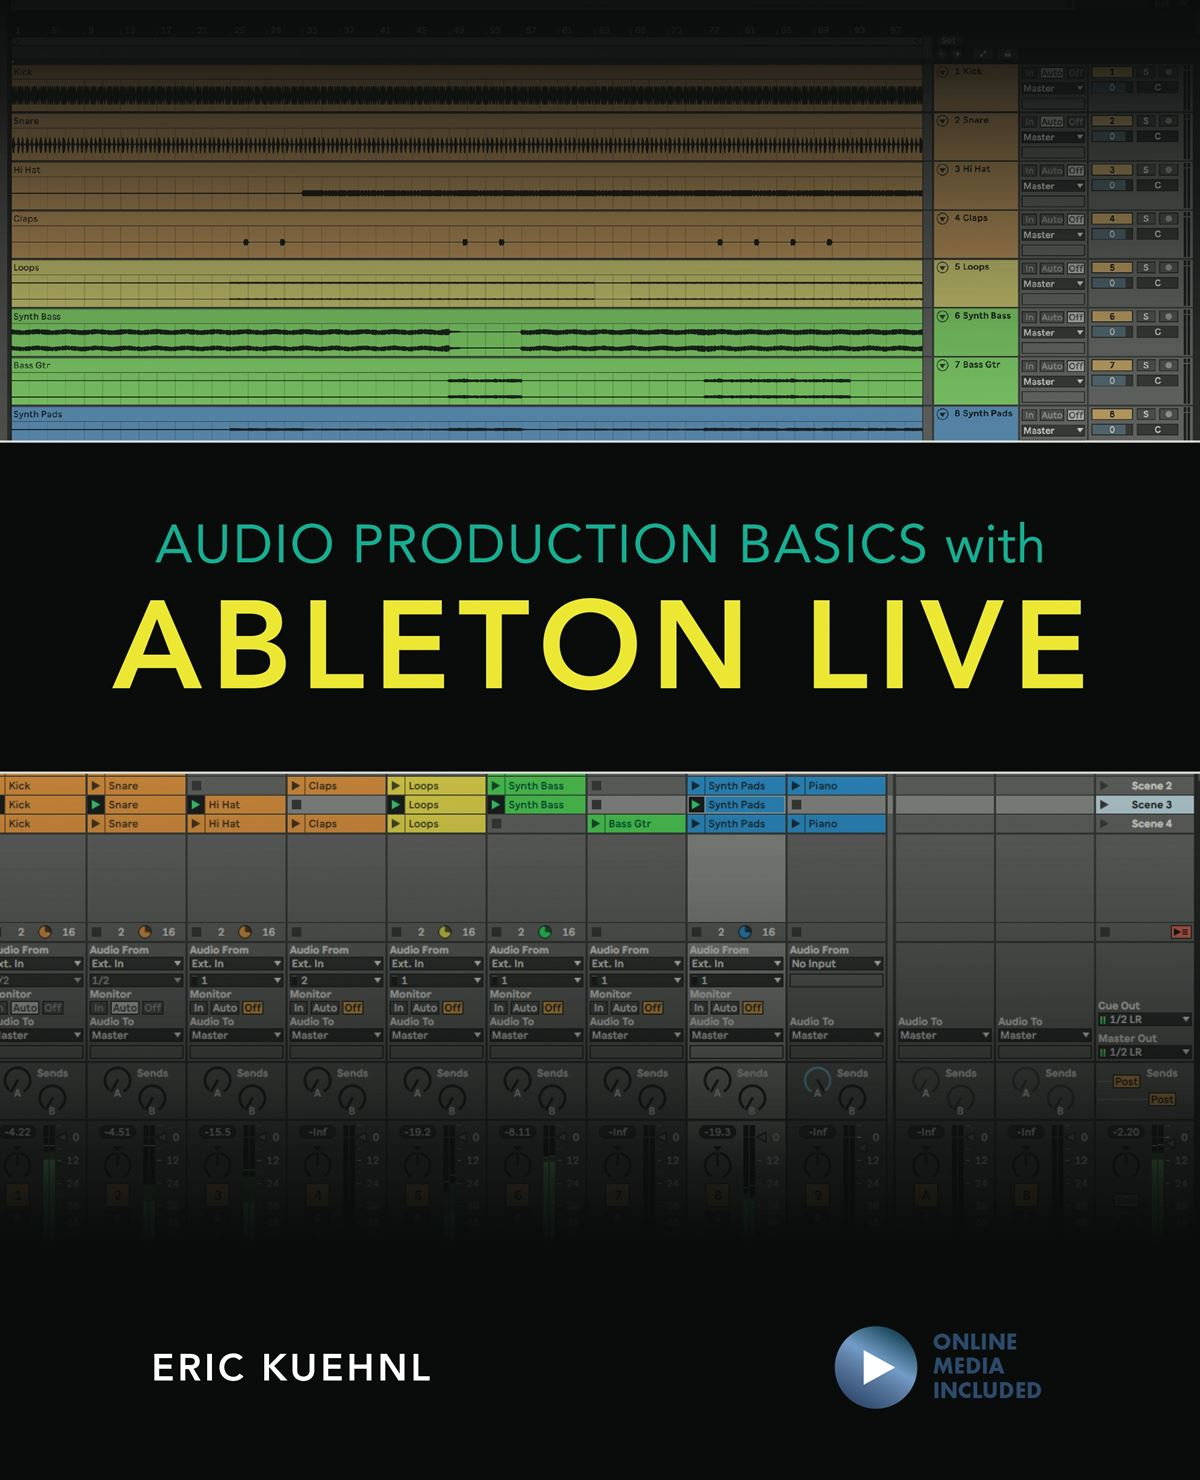 Audio Production Basics with Ableton Live: Theory